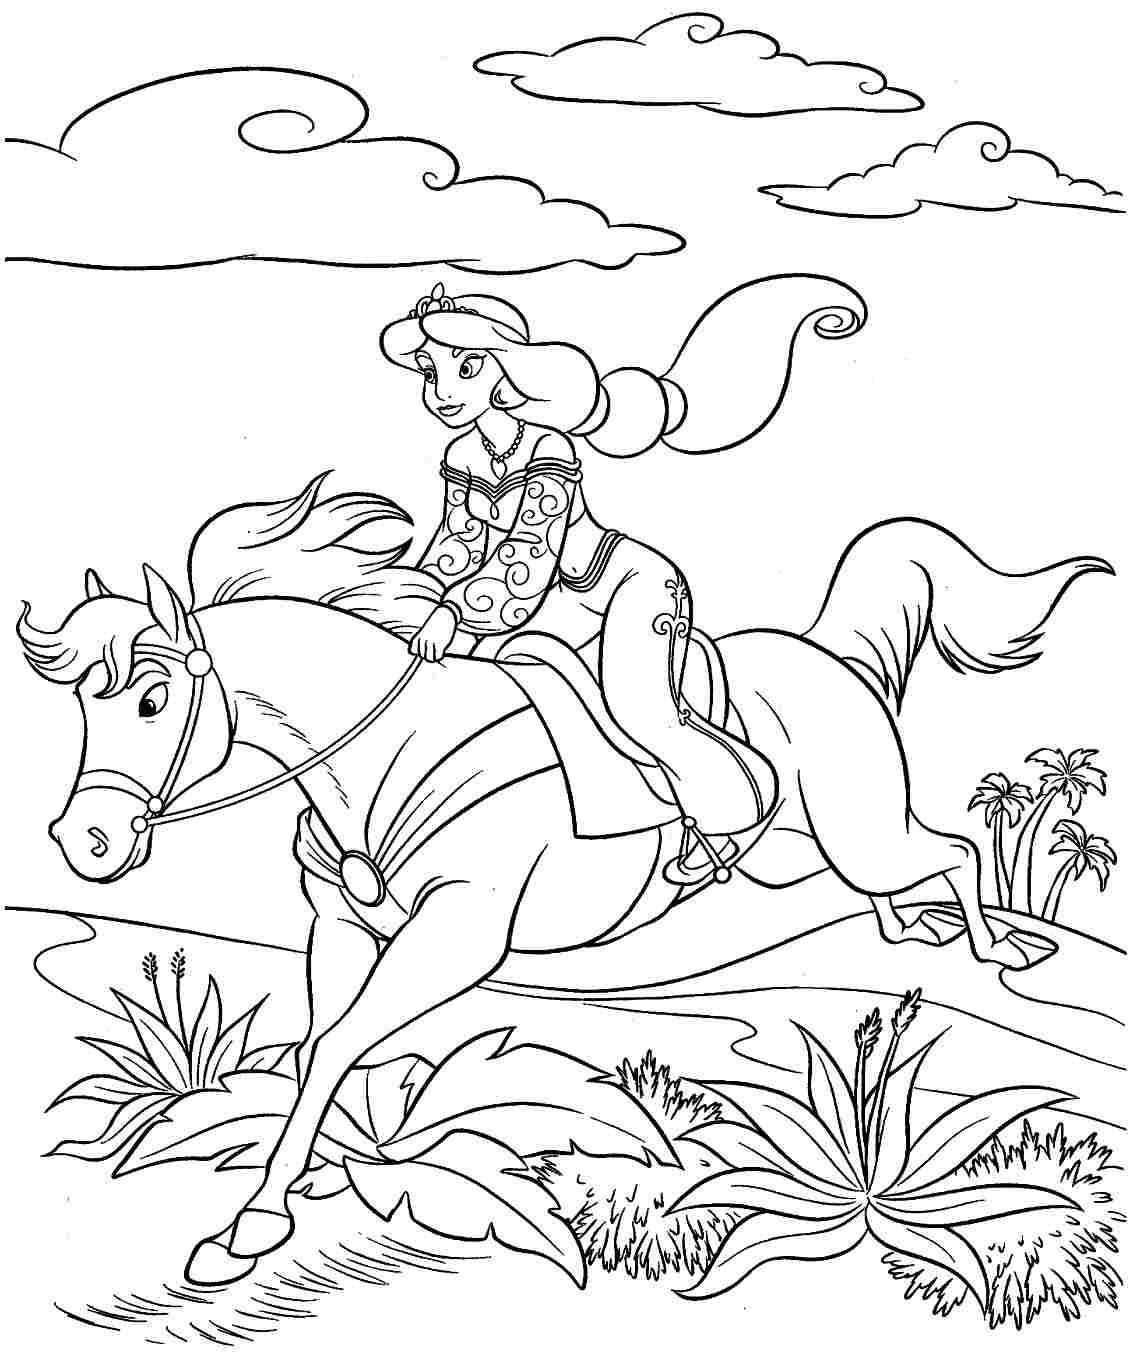 Coloring Pages Disney Princess Jasmine Printable For Kids Boys 55383